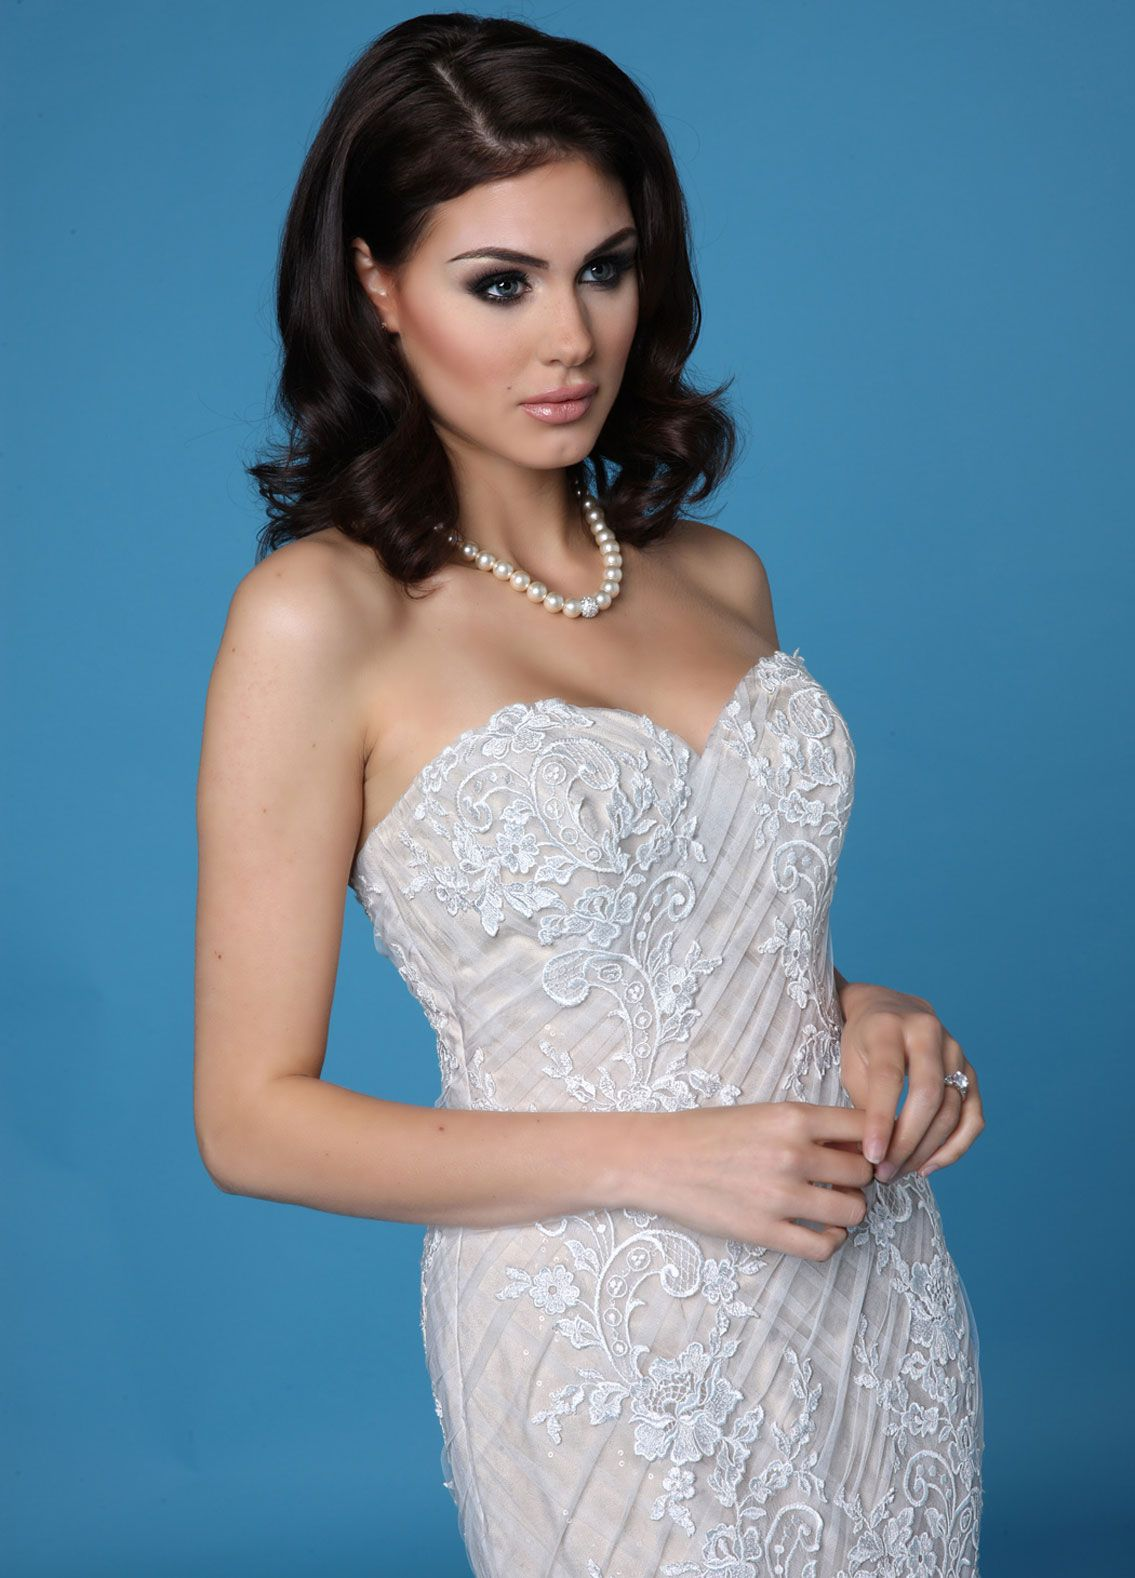 Visit Lovia Bridal Boutique for the best selection of of designer wedding gowns in the Cheshire area. Look no further when searching for that dream dress! Step in to our store of visit us on or web site at www.loviabridal.co.uk Gown 10269 features a #sweetheartneckline bodice and #embroidered #lace flowers on top of a #lattice pattern overlay. #weddingdress